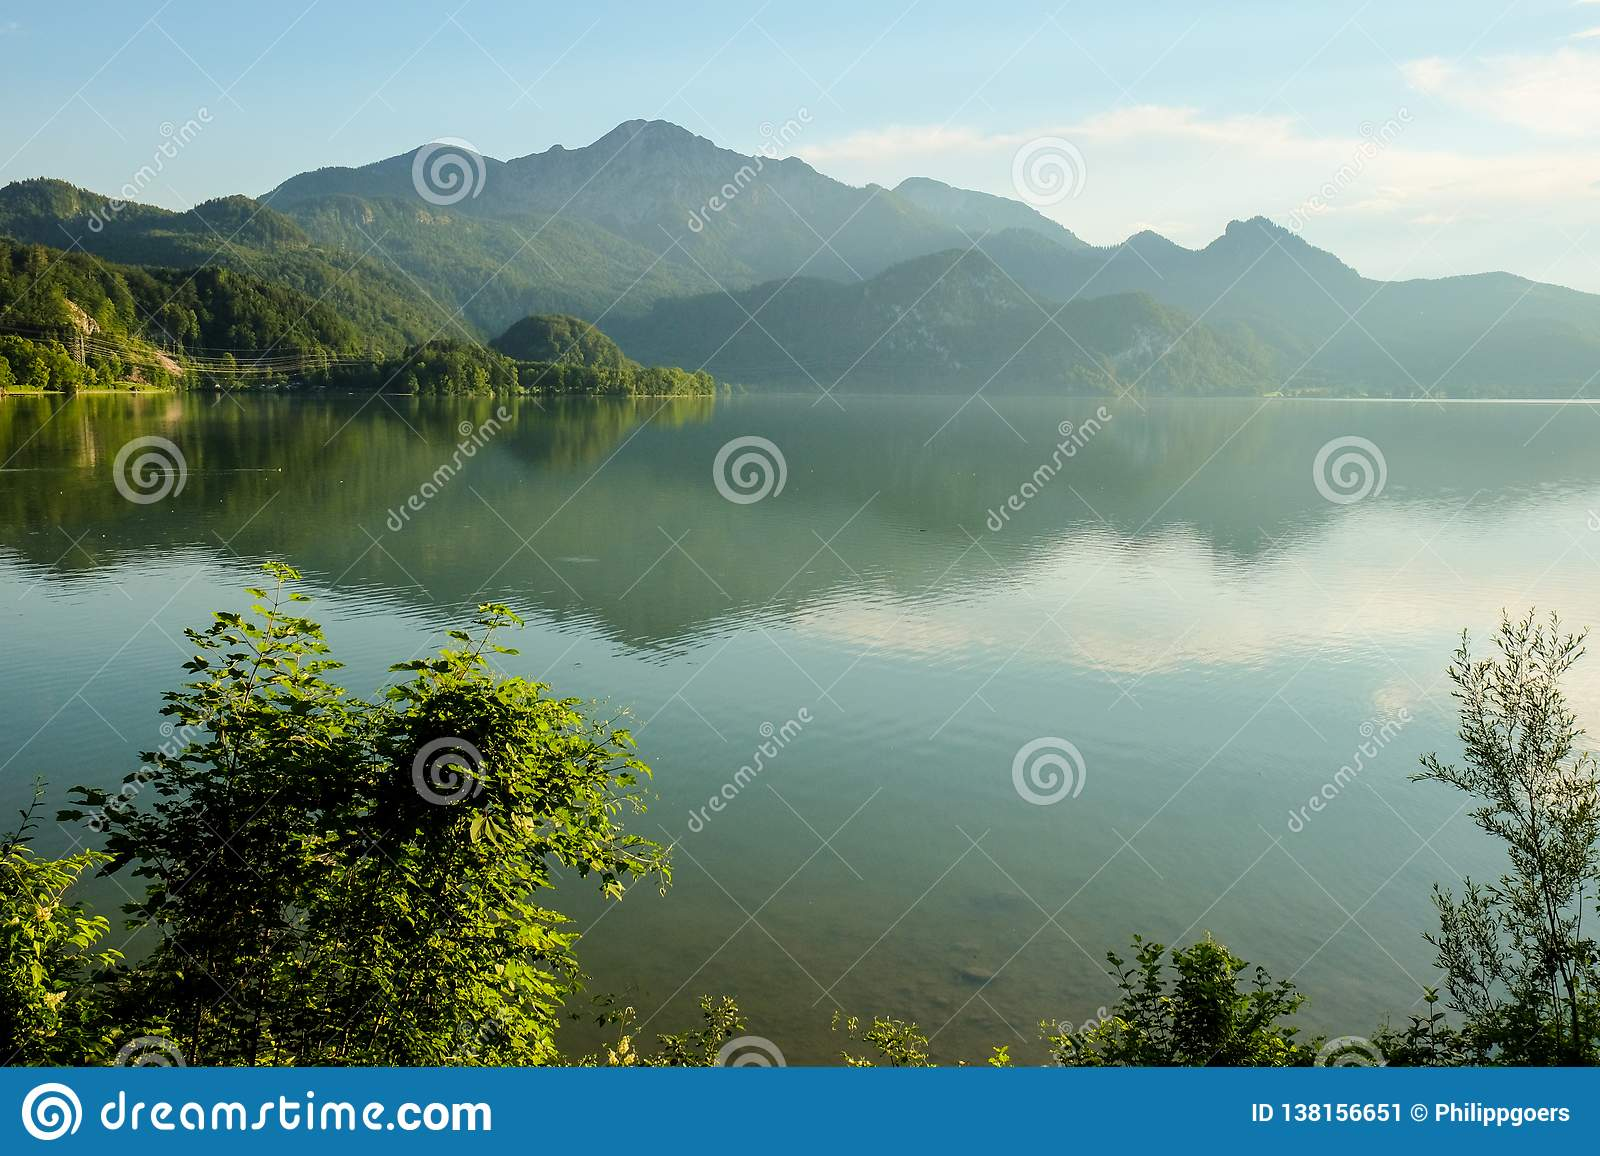 Idyllic foggy mountain landscape with a lake and mountains in the background